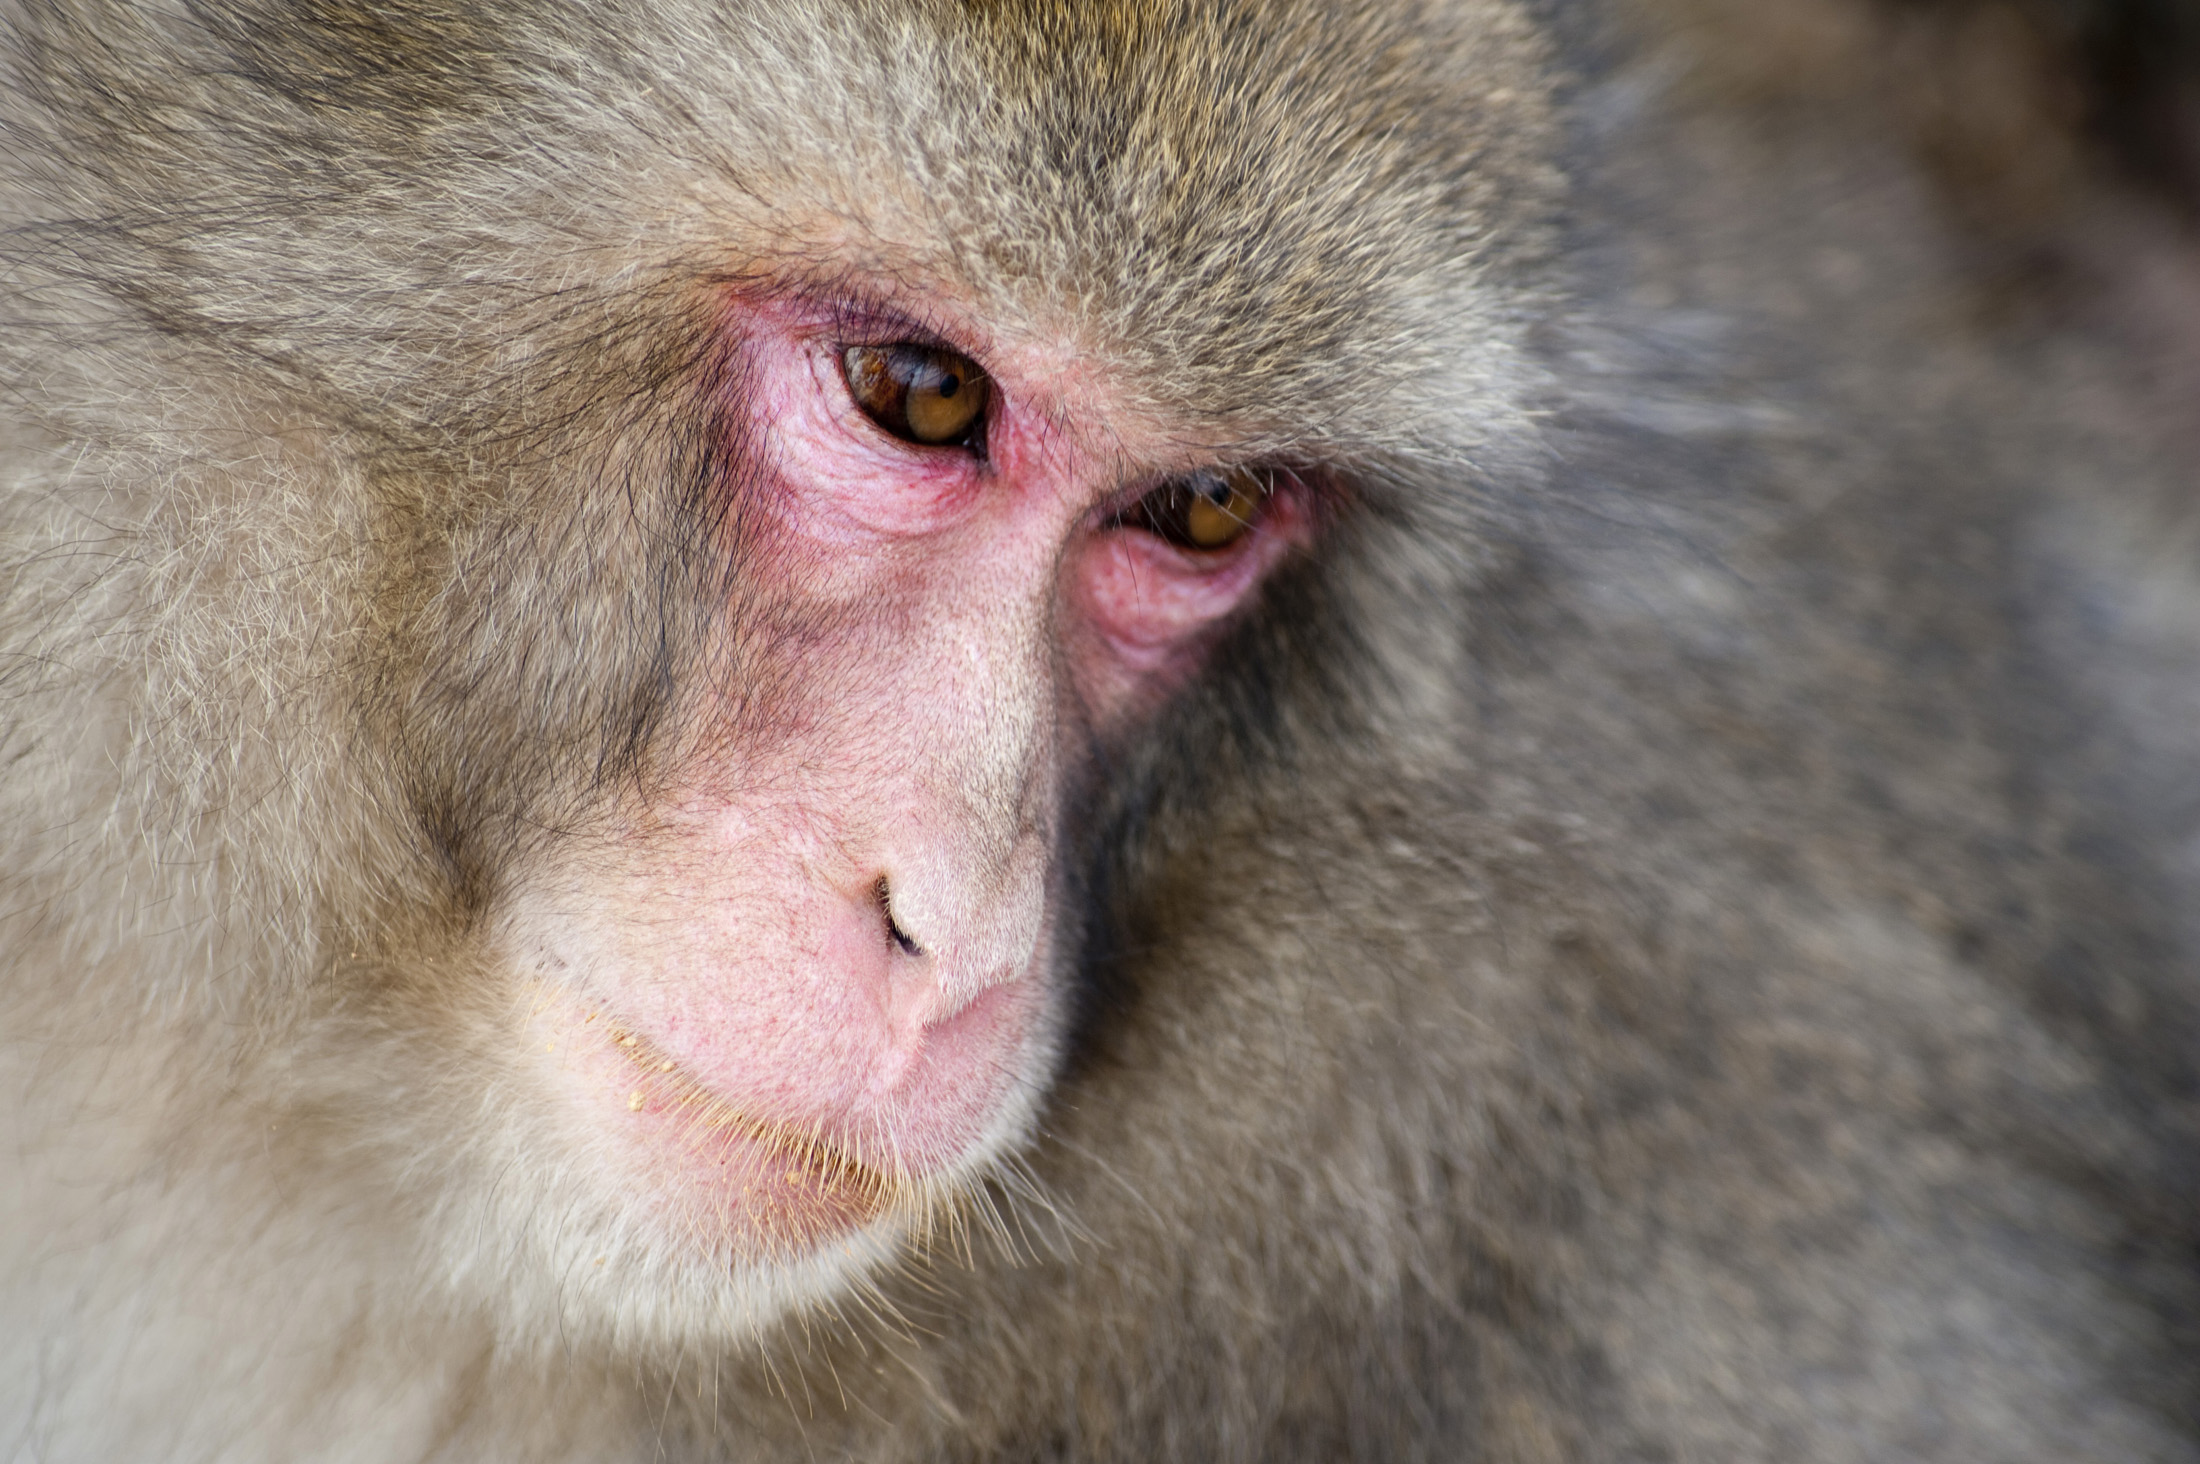 close up on the face of a snow monkey